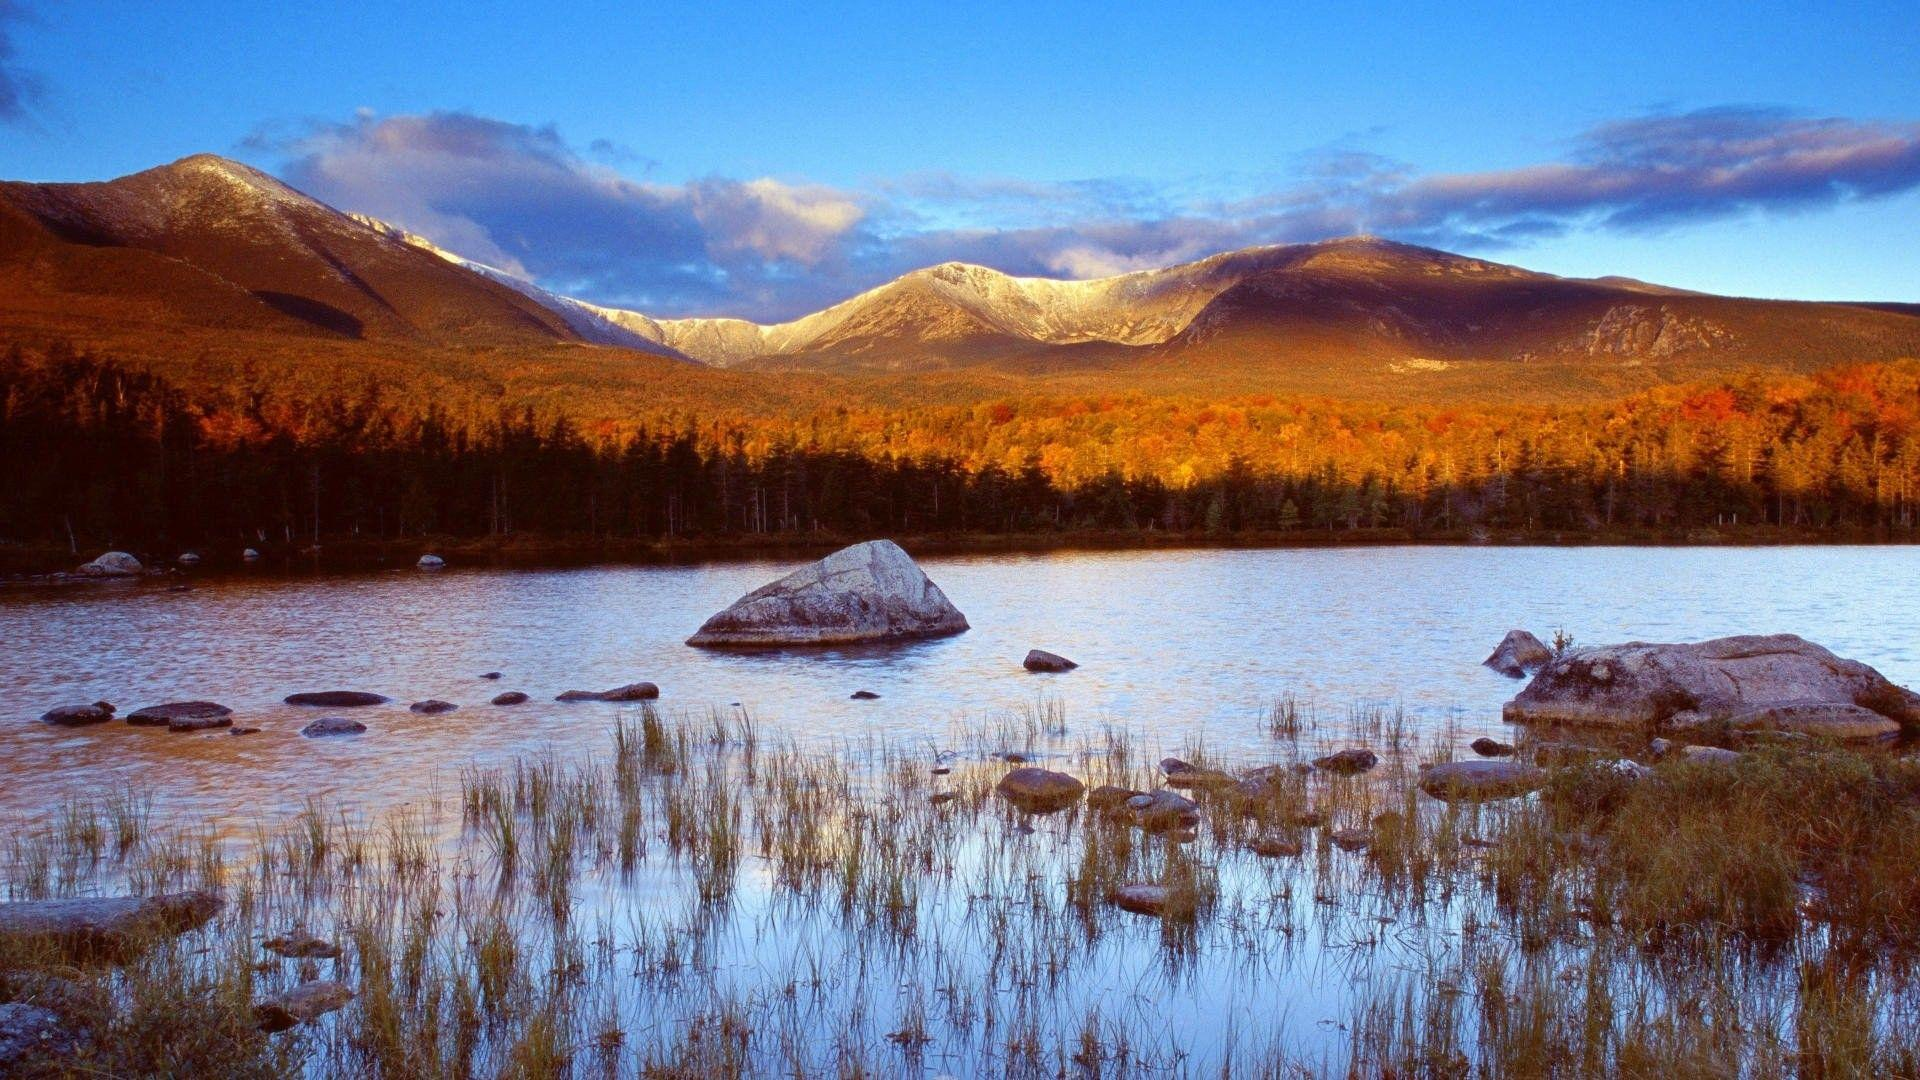 October 16, 2016 wallpapers Page 3: Landscapes Nature Wallpaper ...